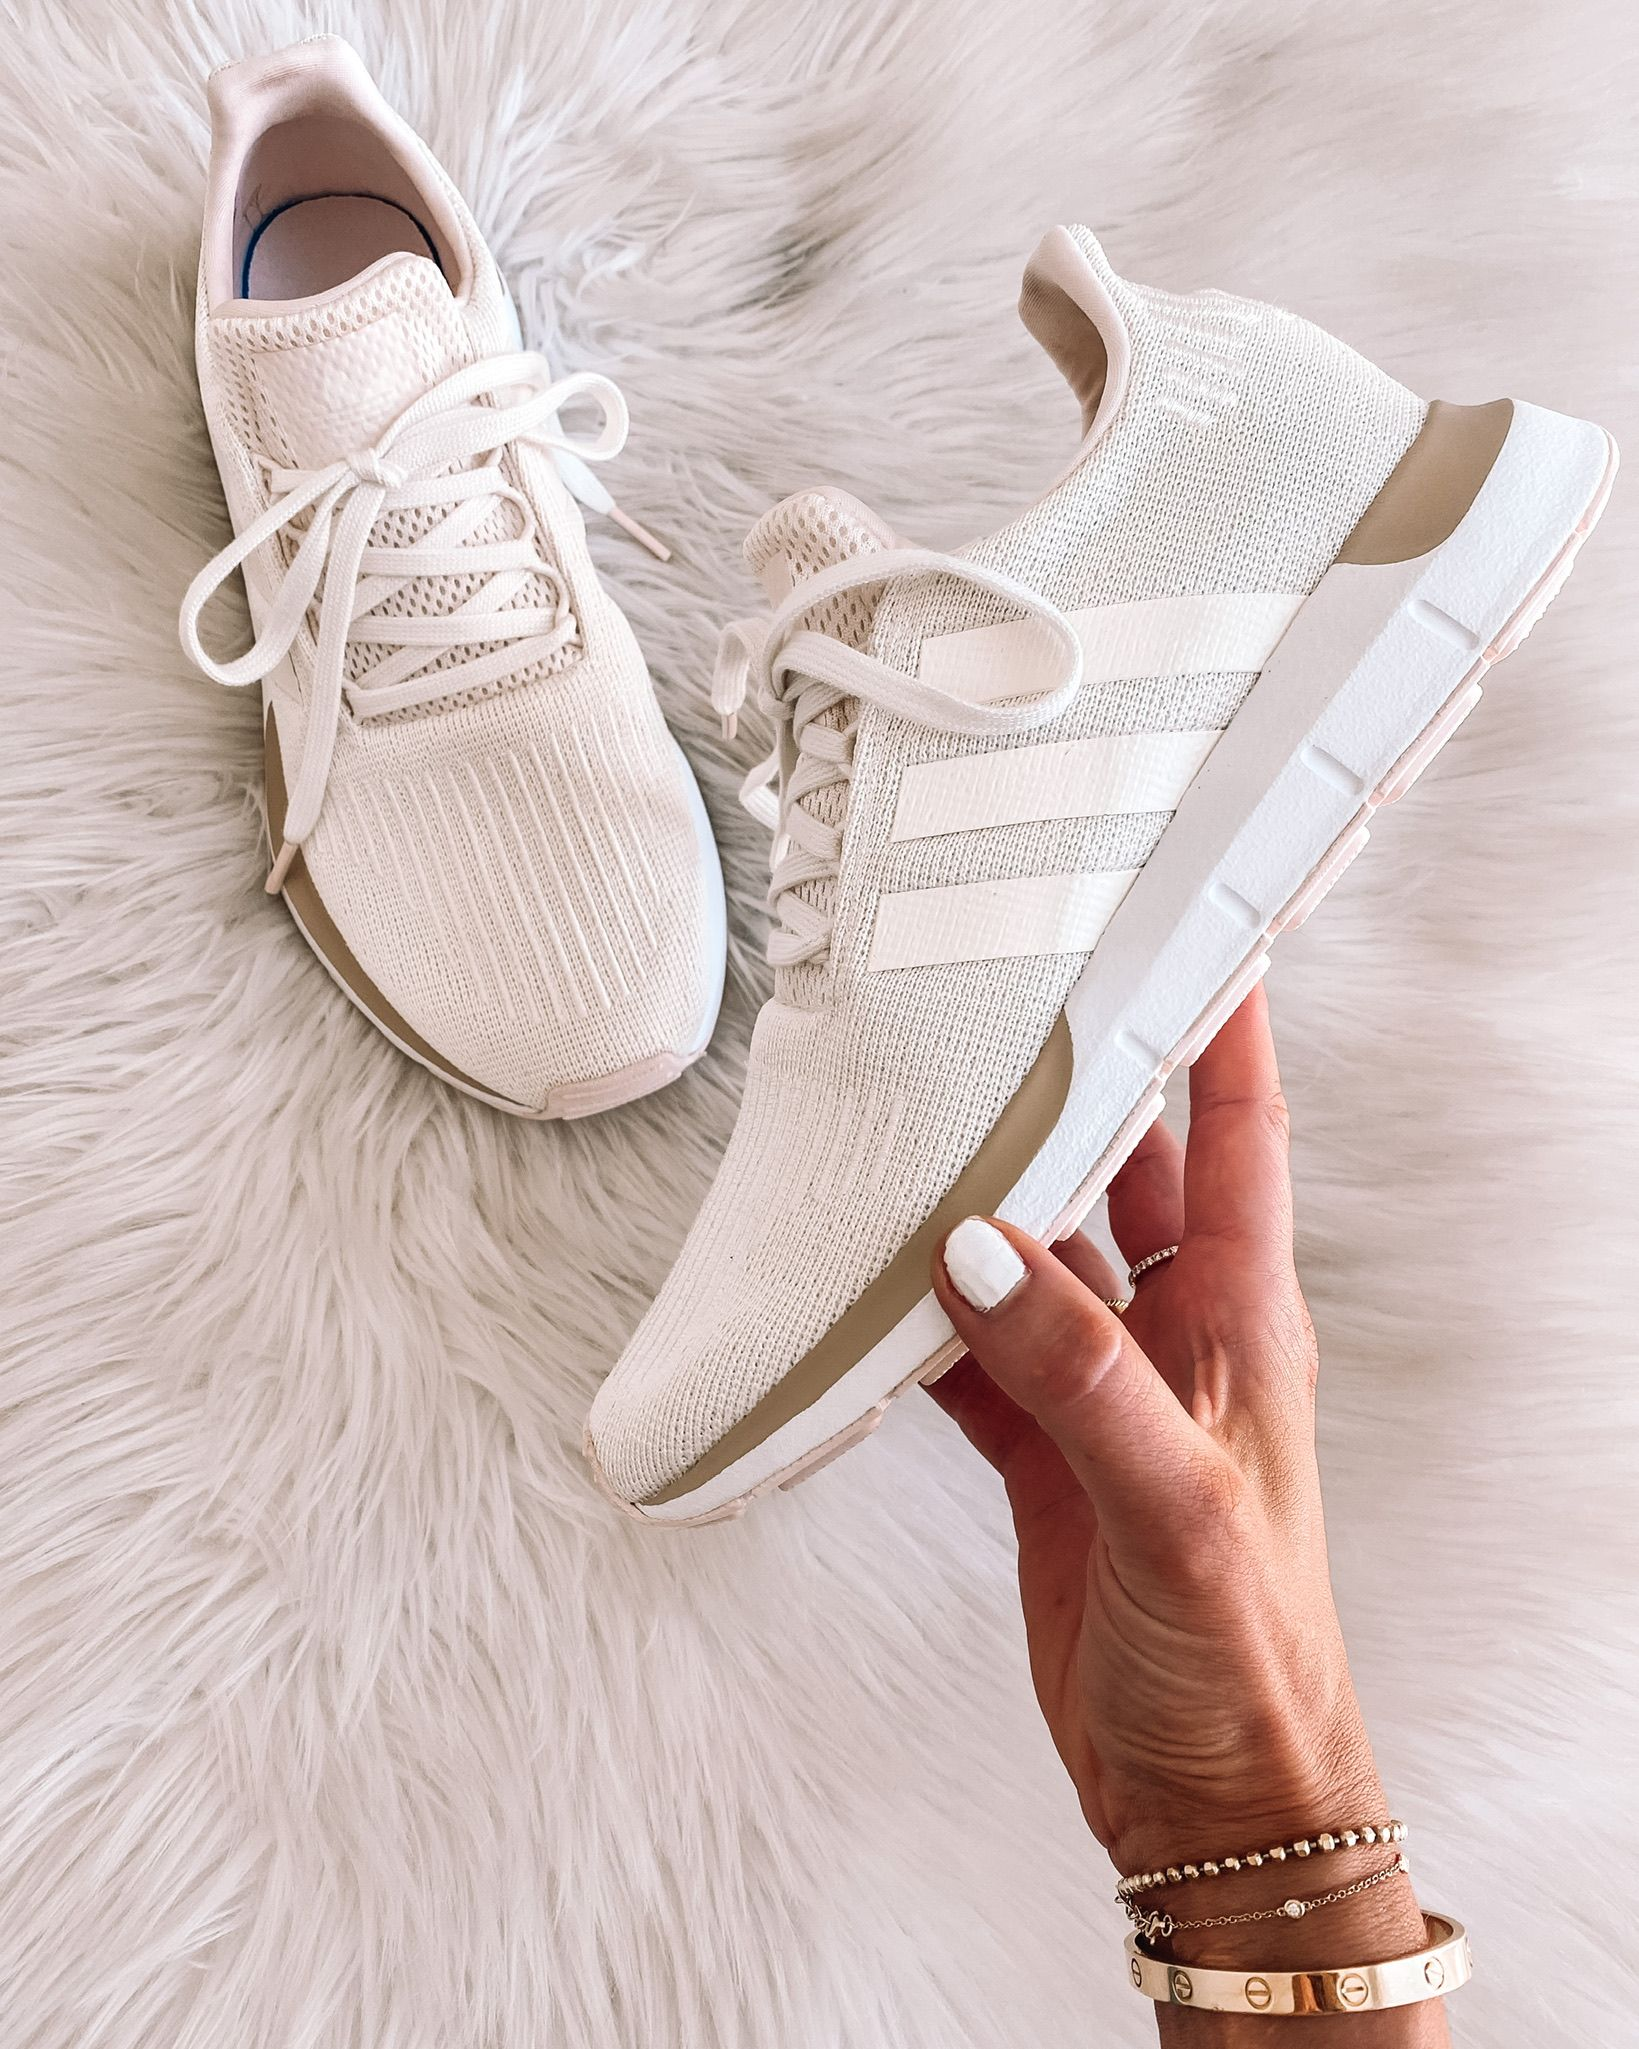 204 Best Tops: Adidas images in 2020 | Adidas, Adidas outfit